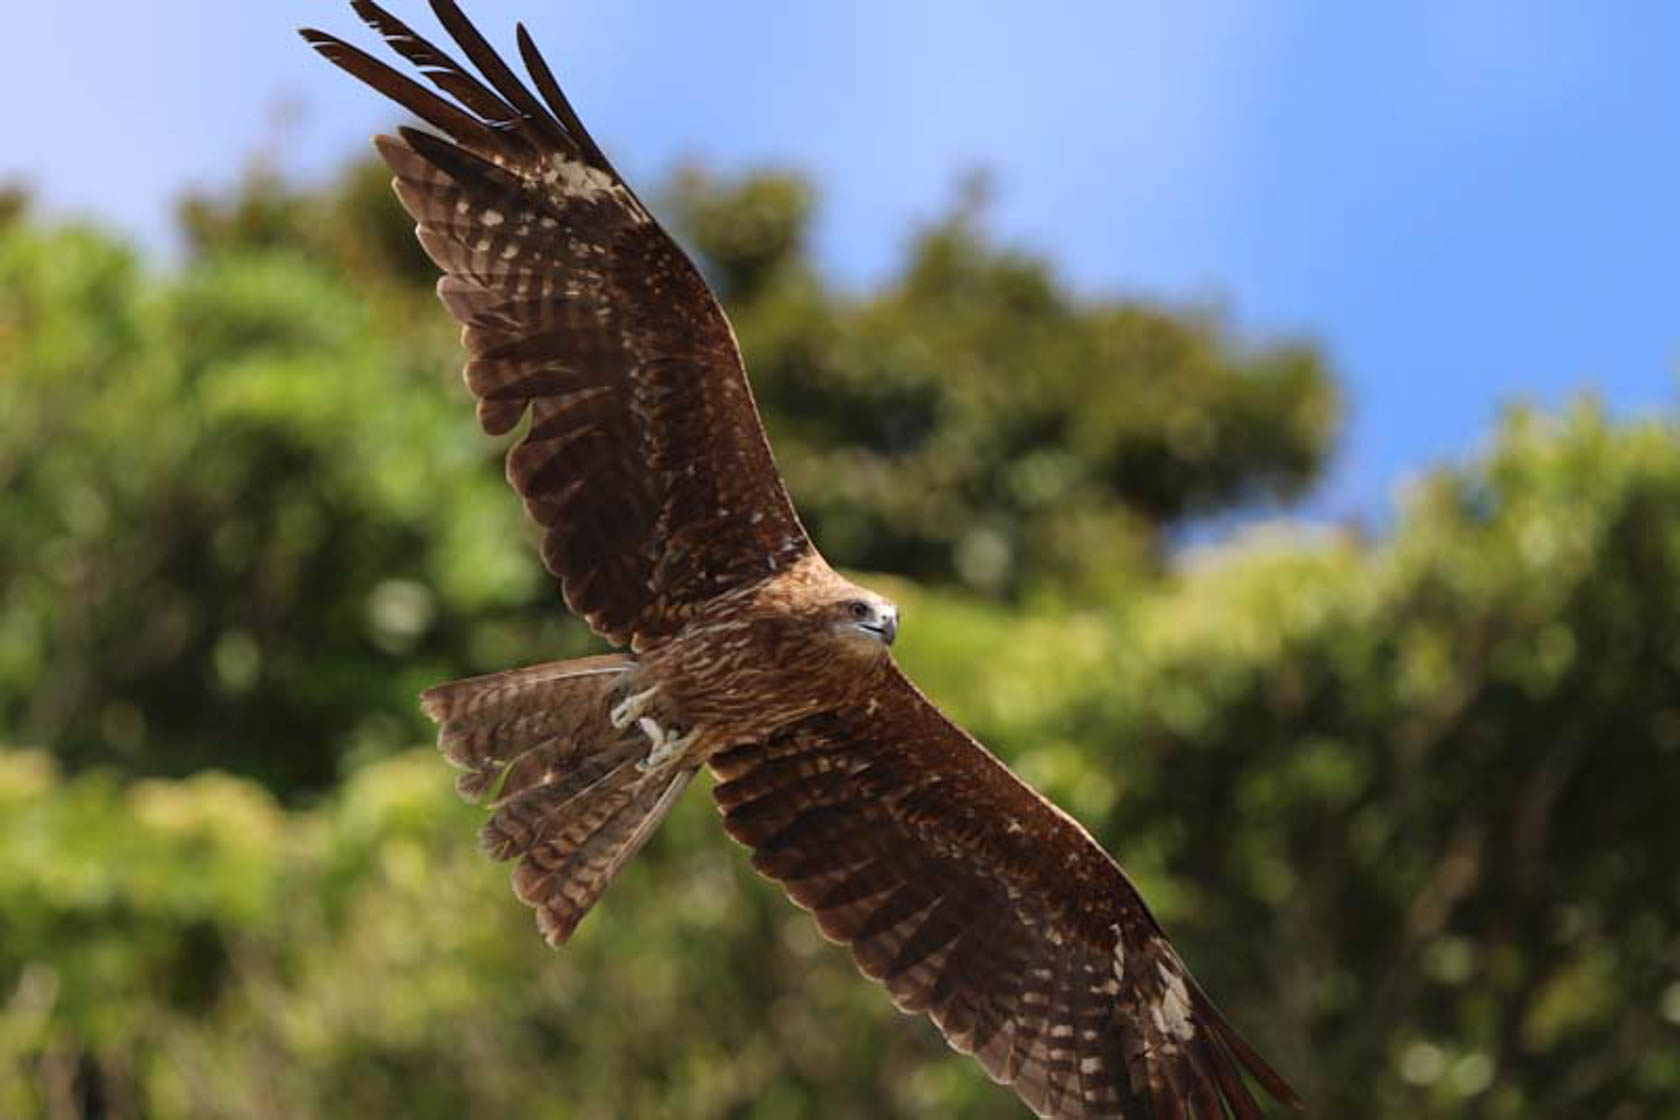 Eagle in flight captured on canon EOS 7D Mark II camera